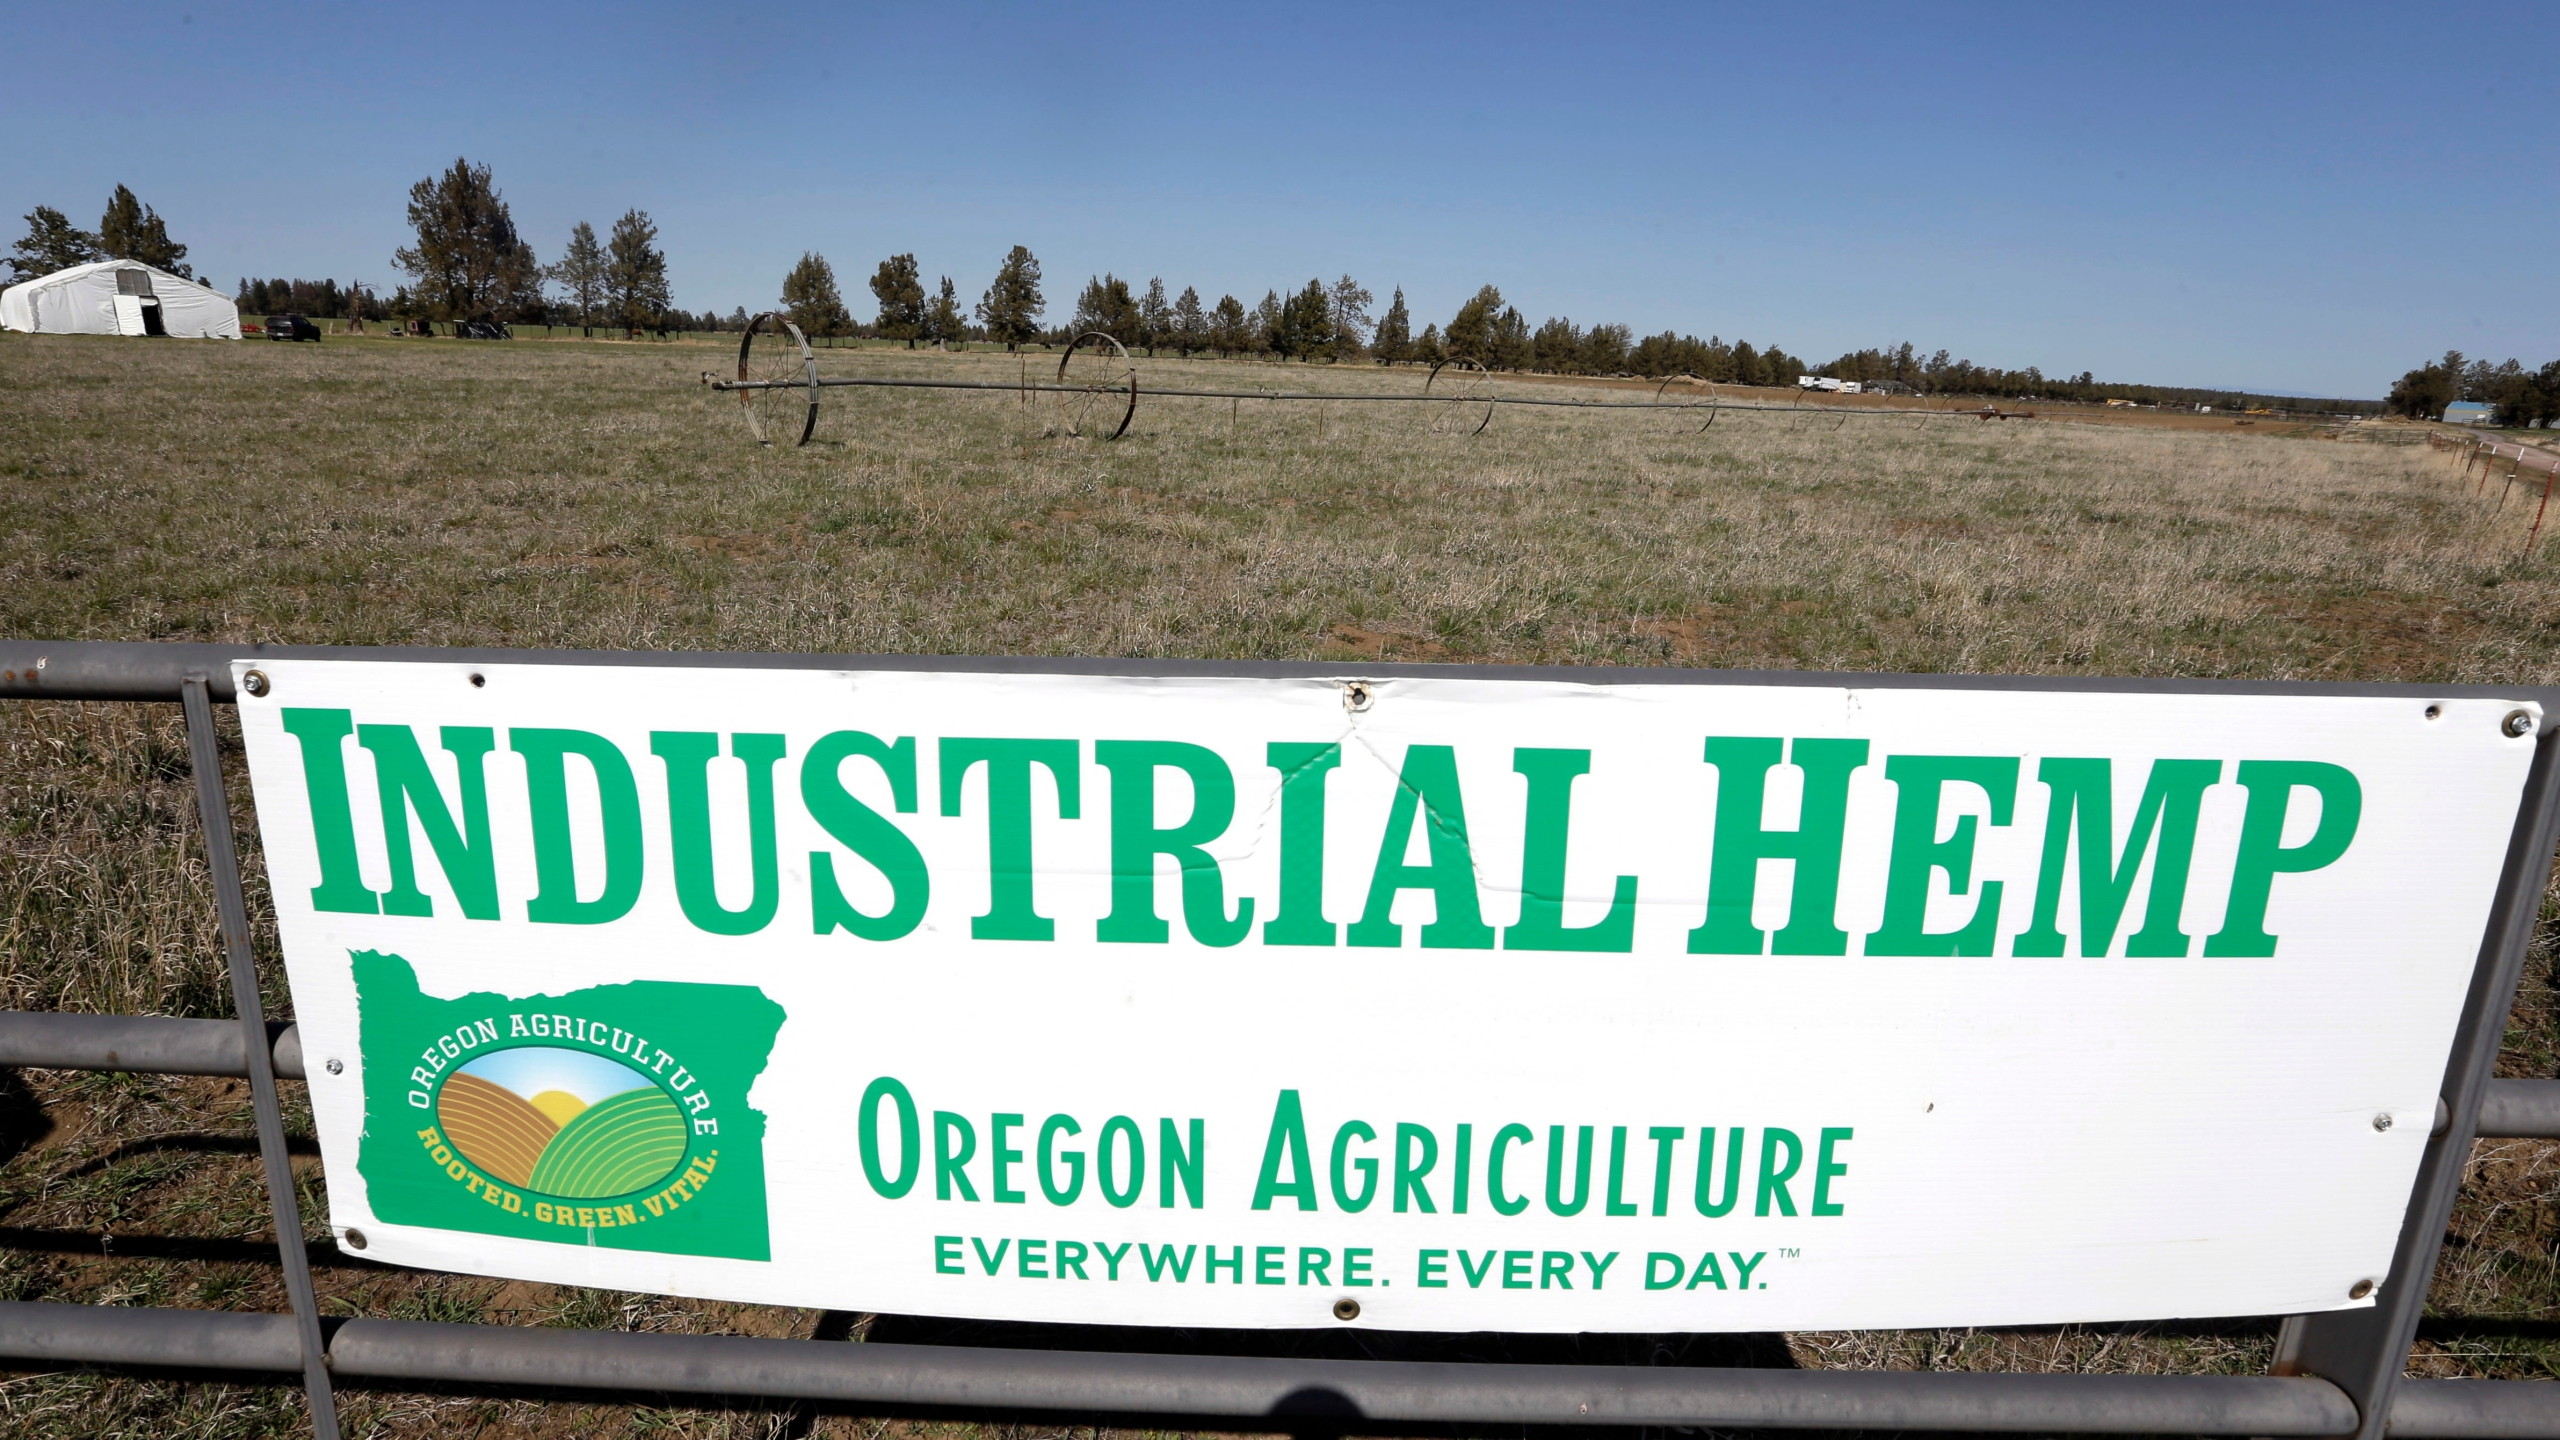 Dreams of growing hemp in Oregon go up in smoke